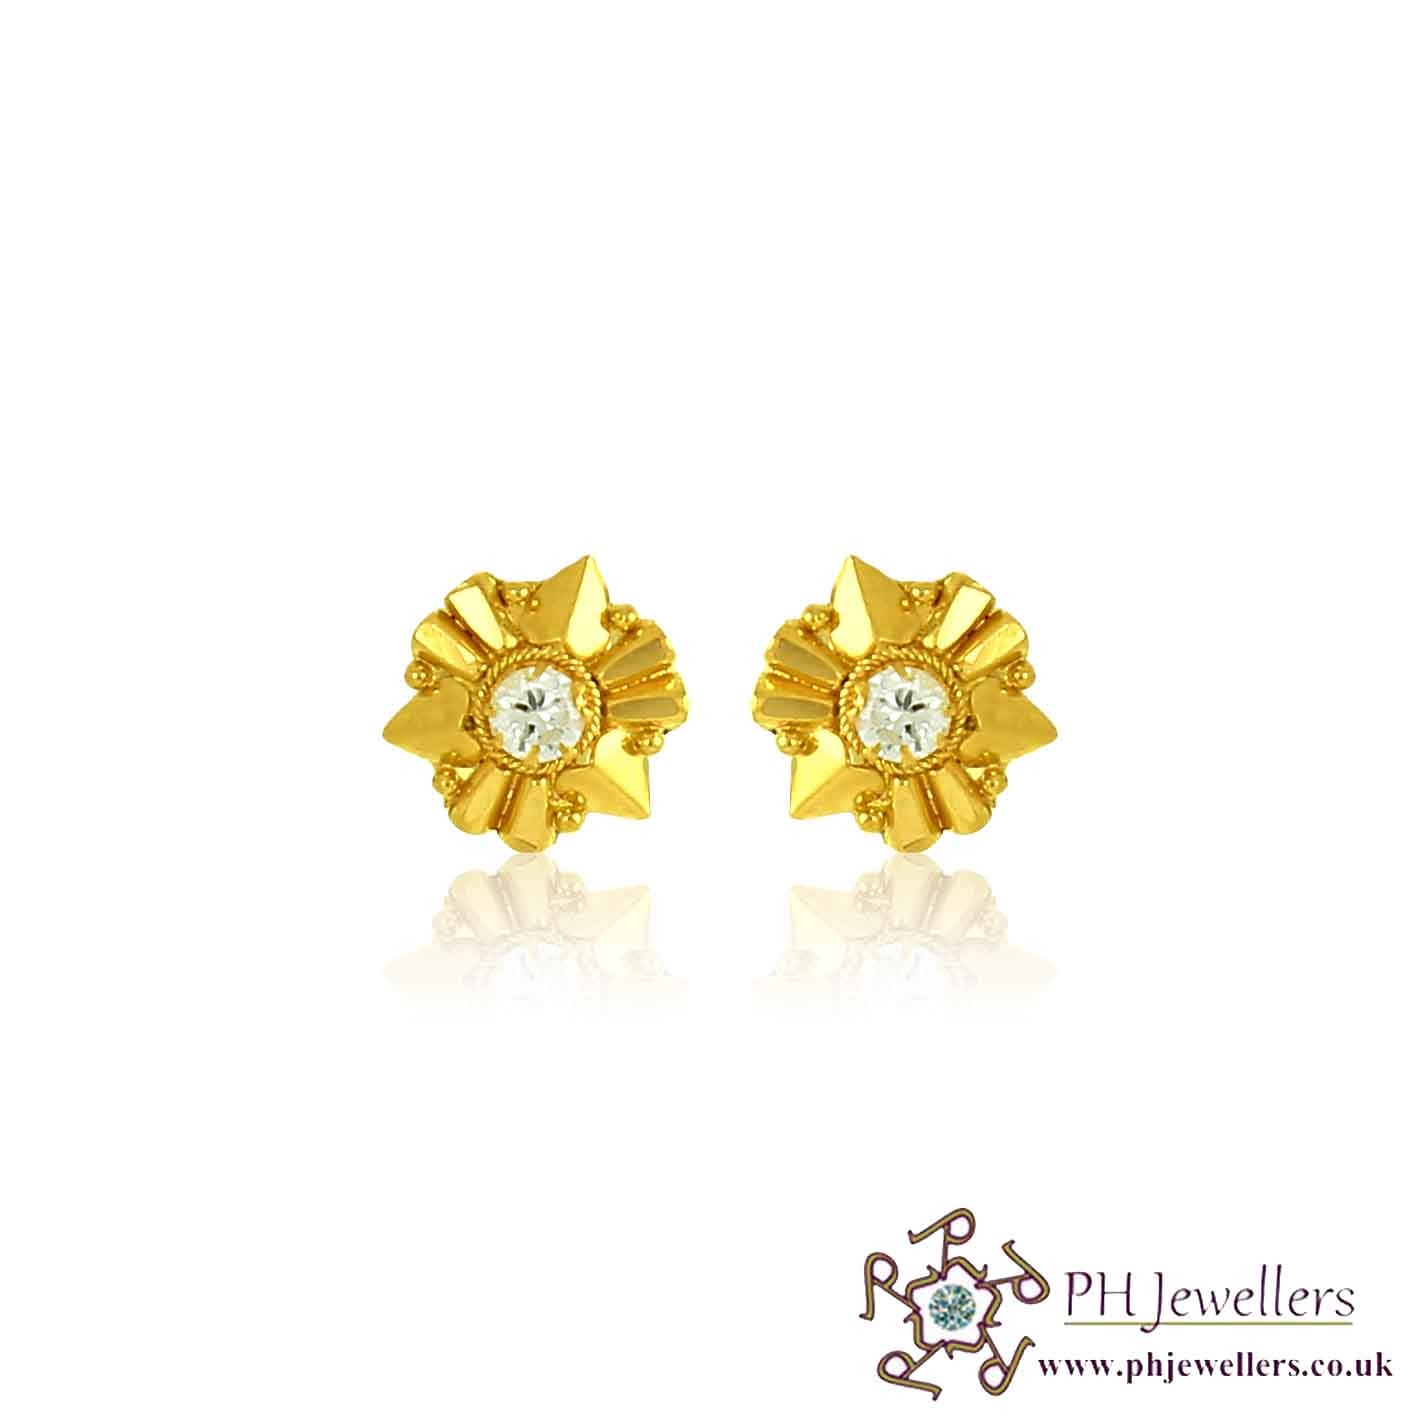 22CT 916 Yellow Gold Earring CZ SE62